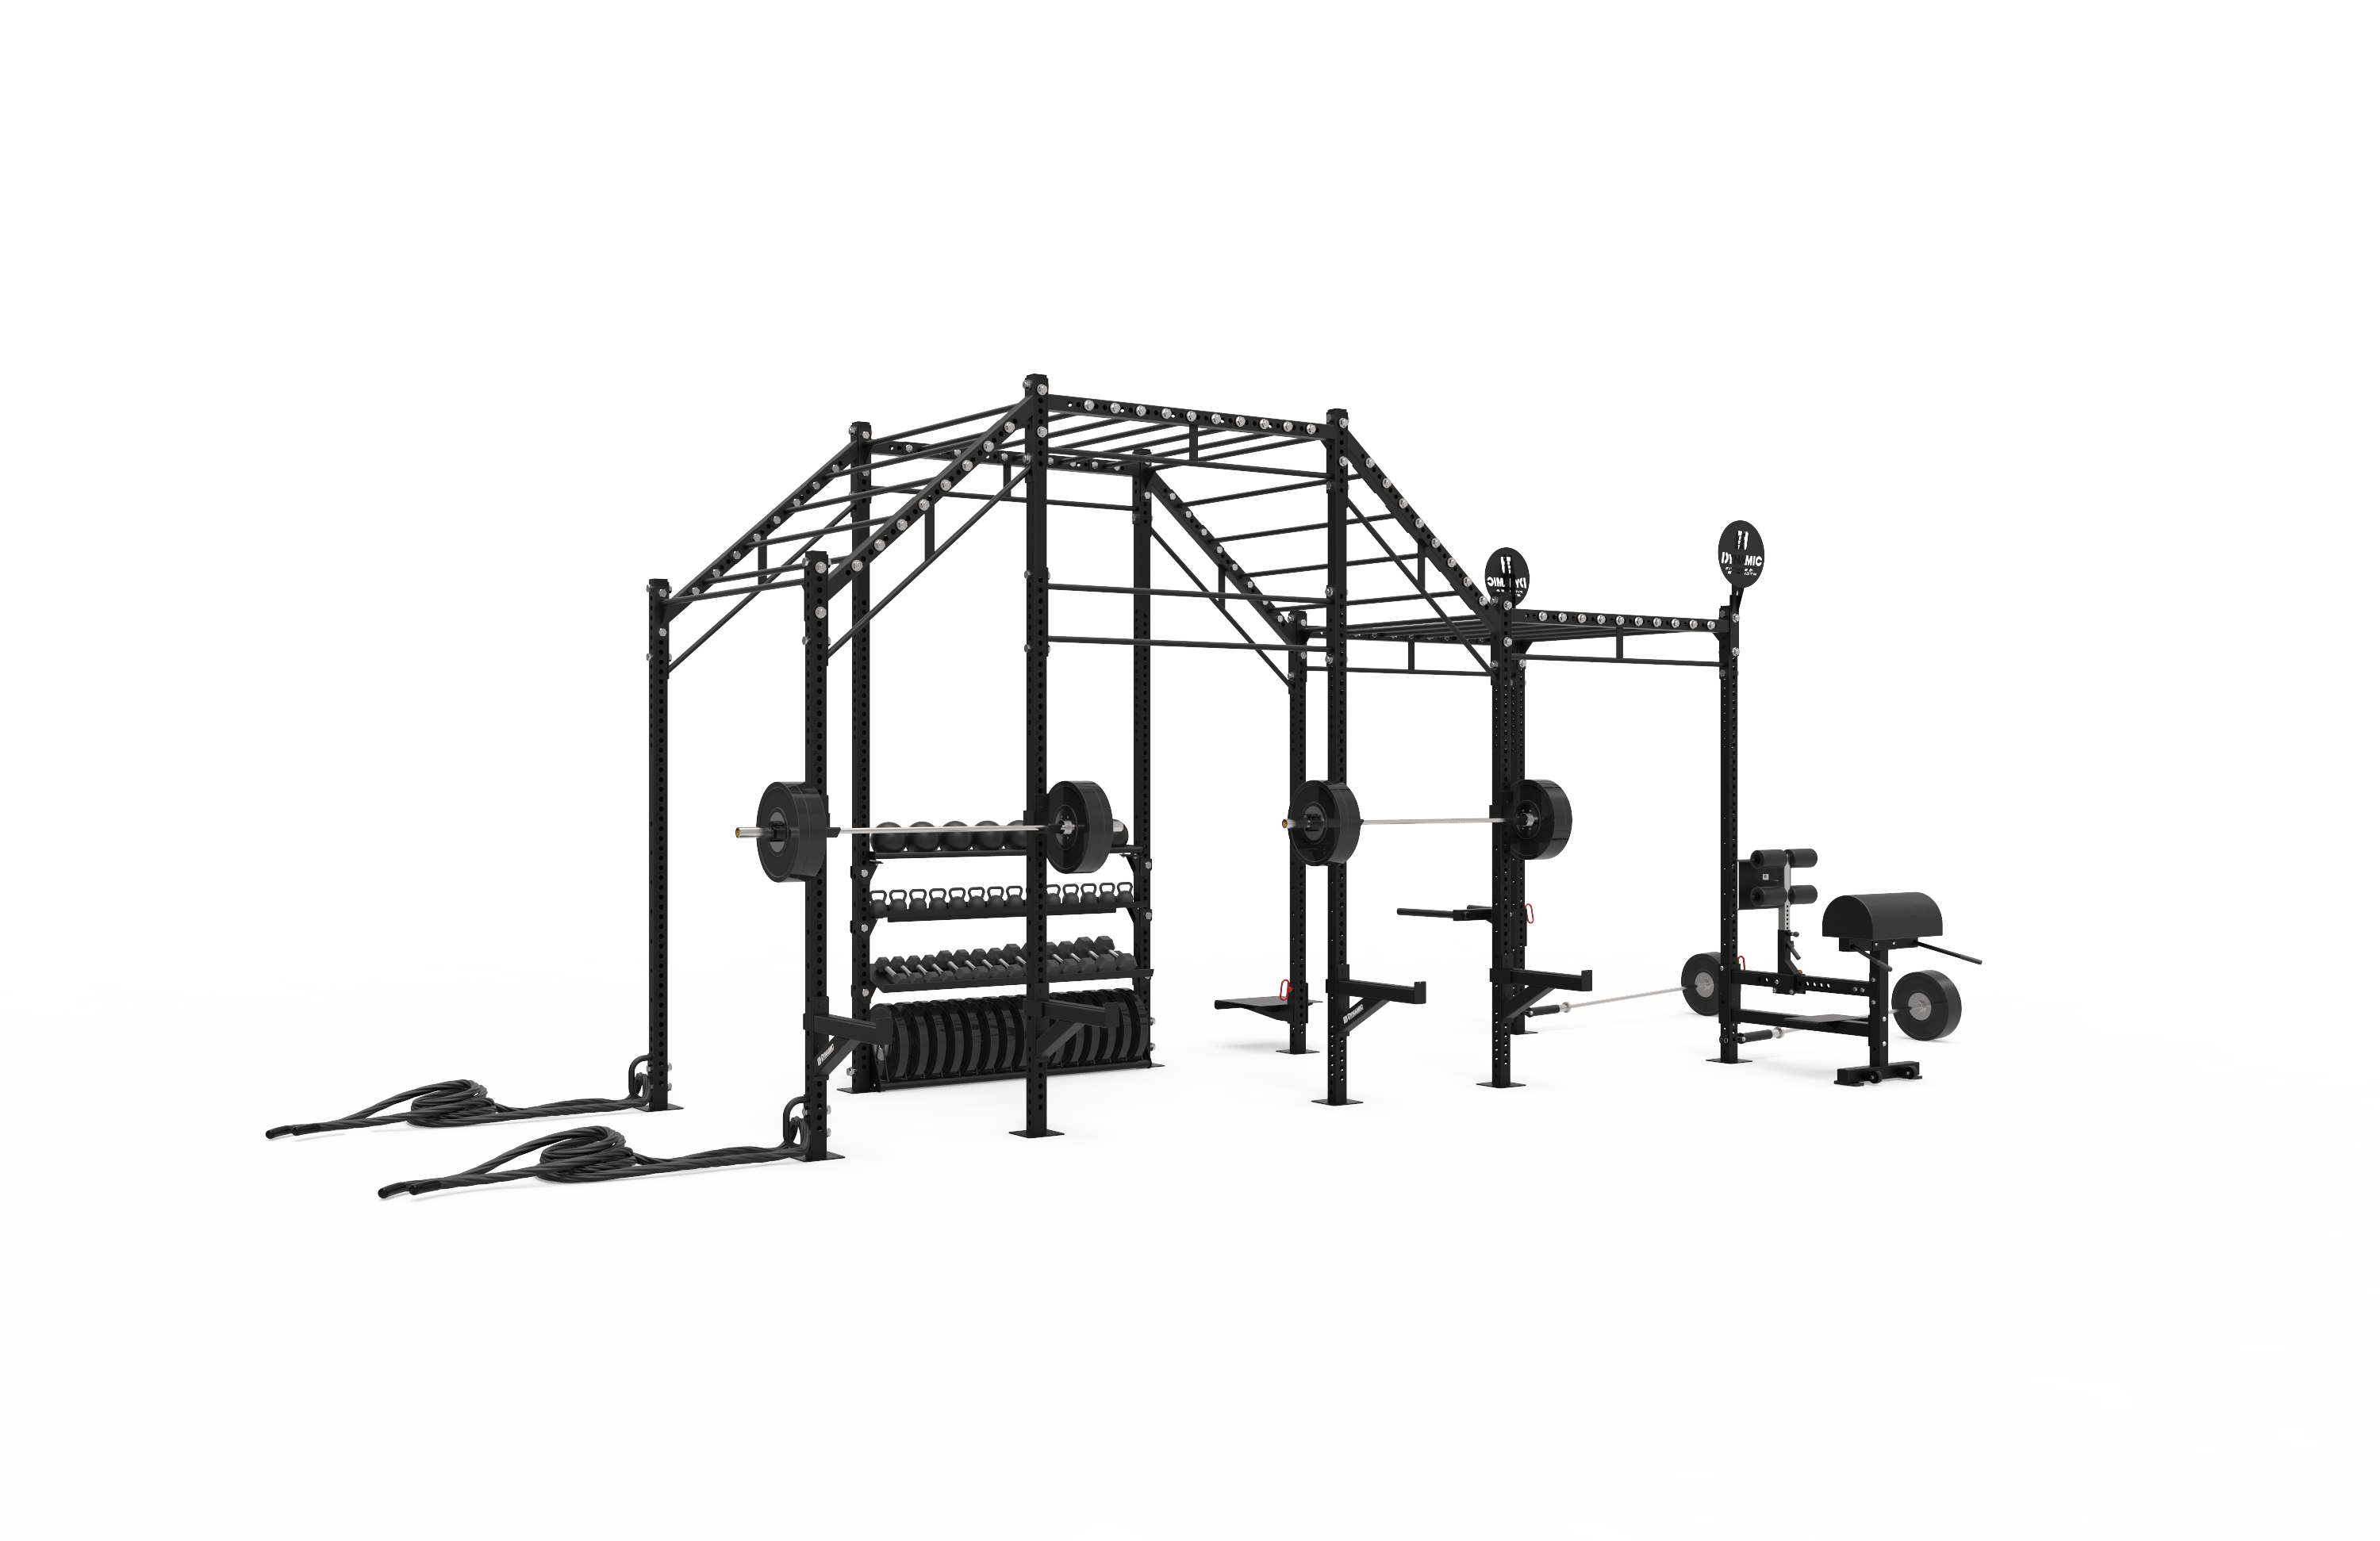 Monkey Bar Zebra Fit 20 Incline Monkey Bar Rig Zebra Athletics